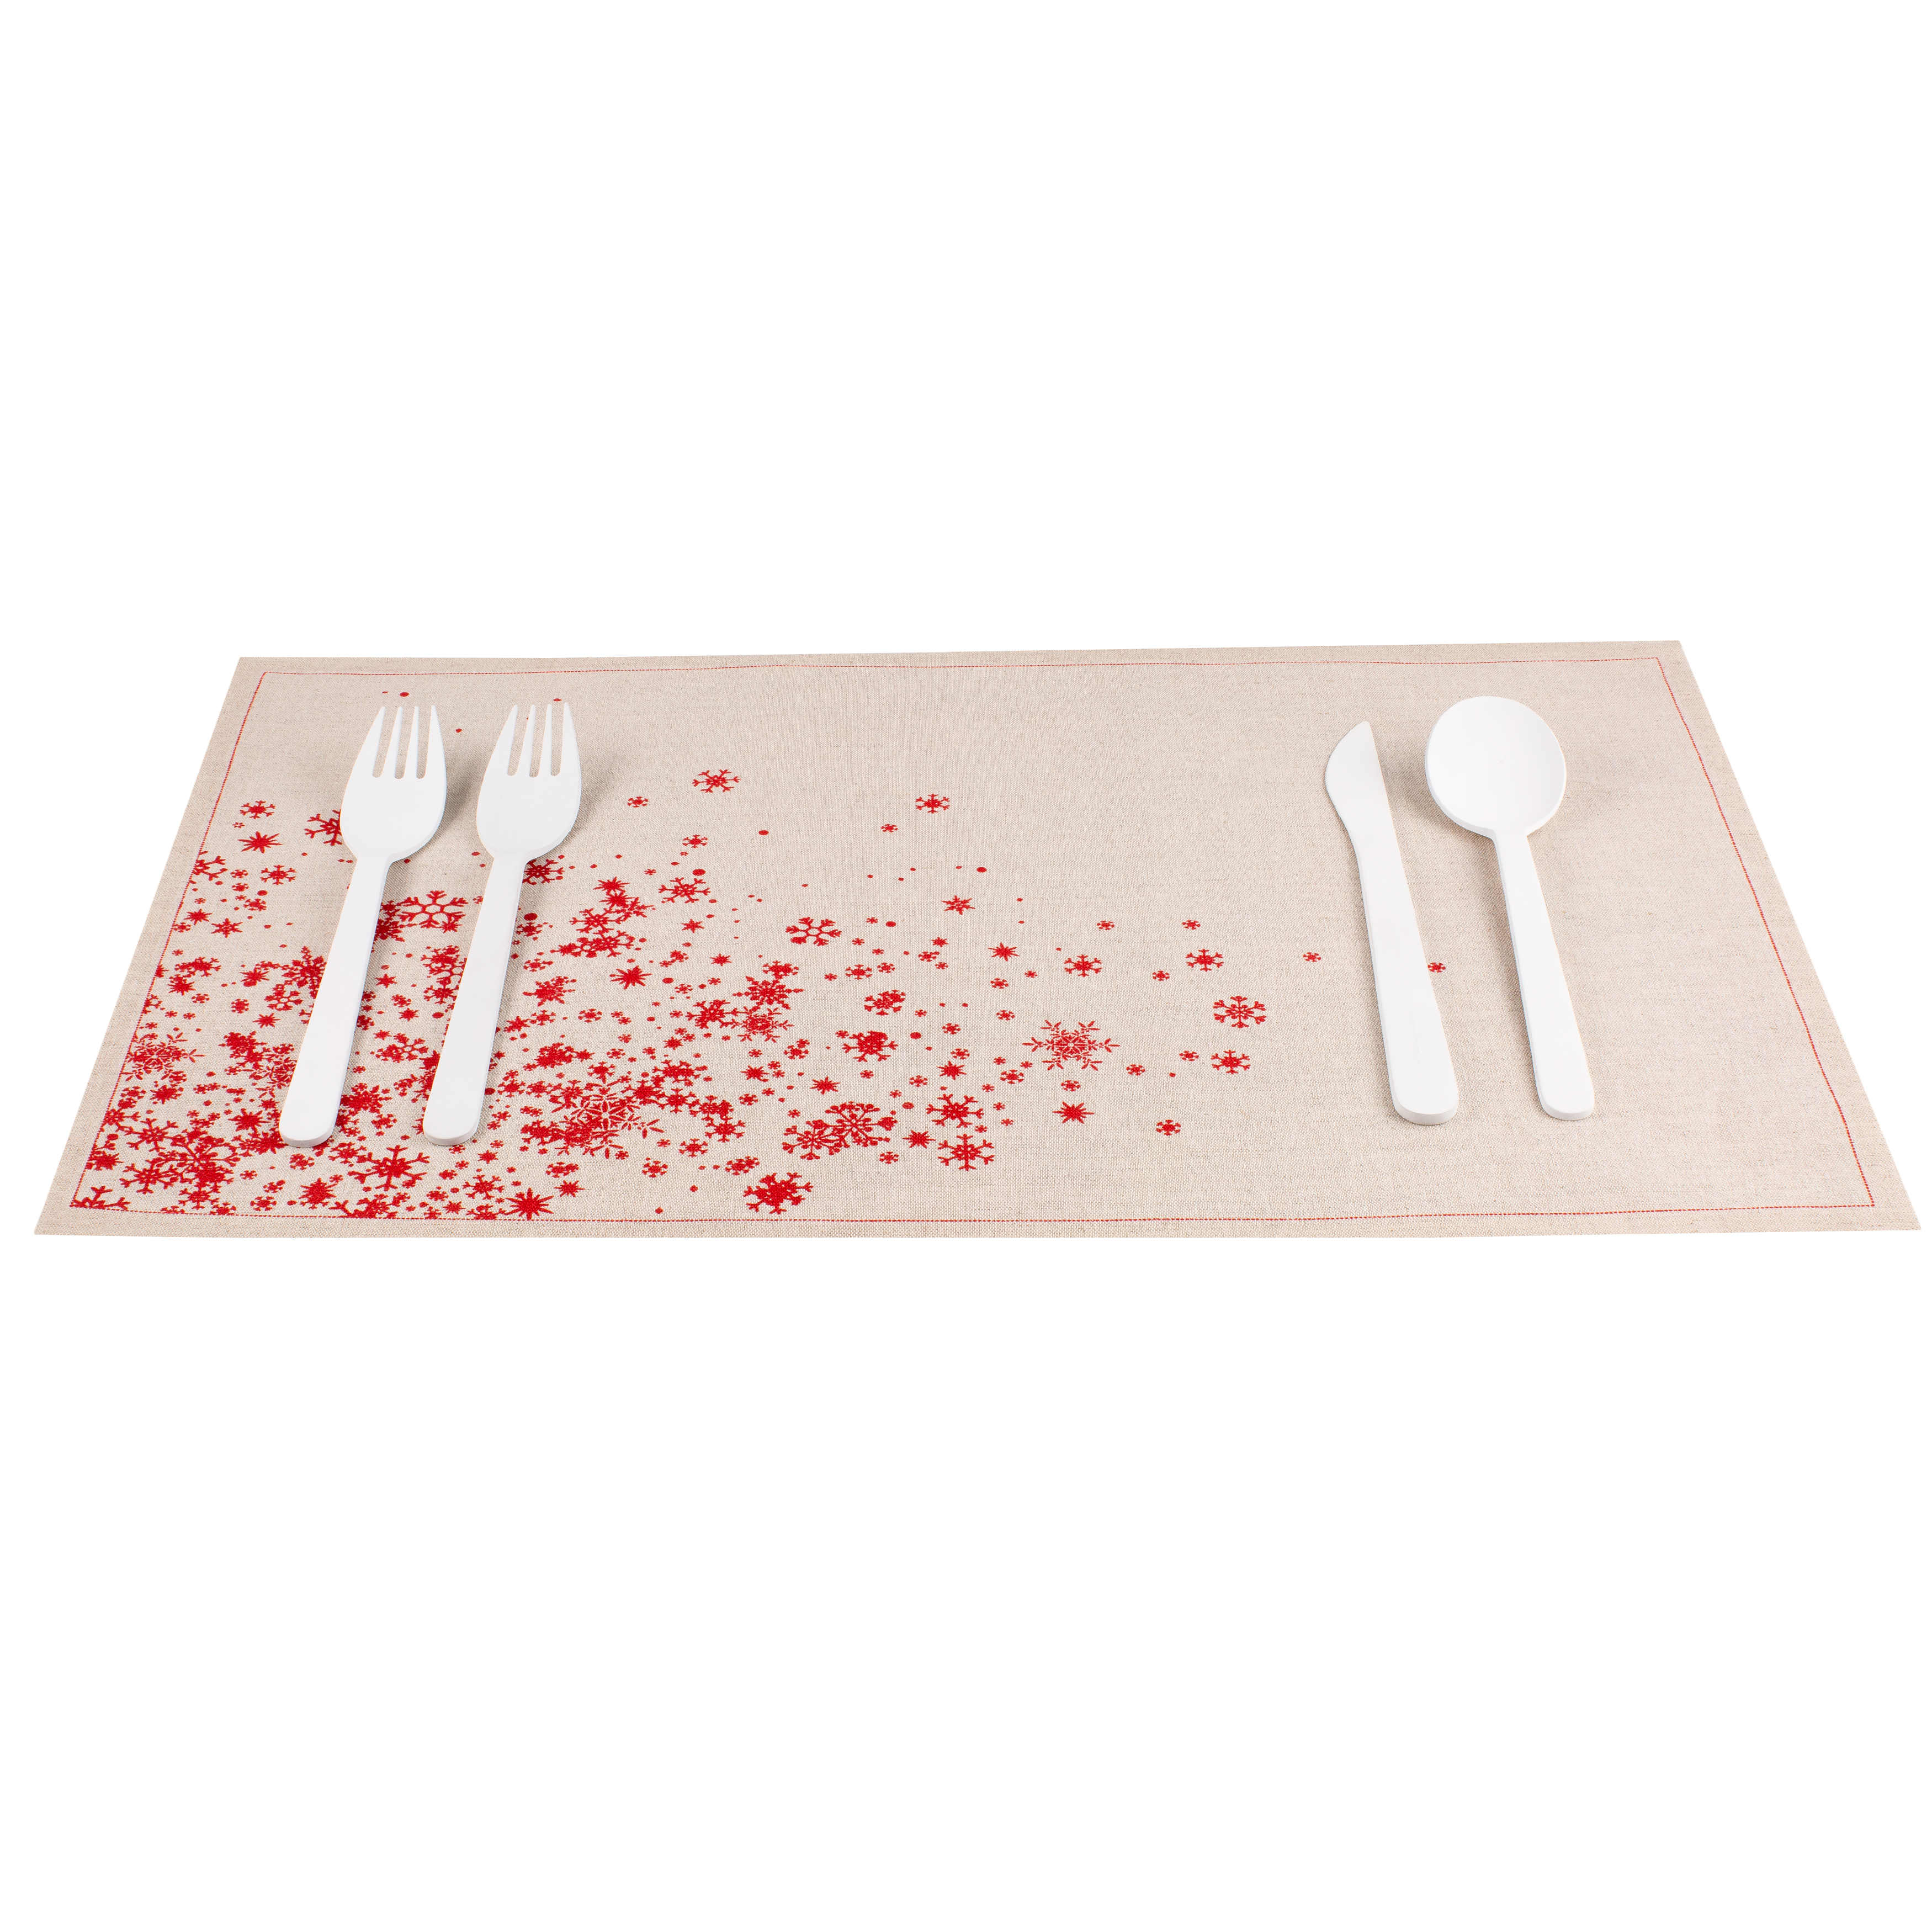 "Snowflake Cascade Natural Linen Placemat - 18.9"" x 12.6"" - 120 Units"